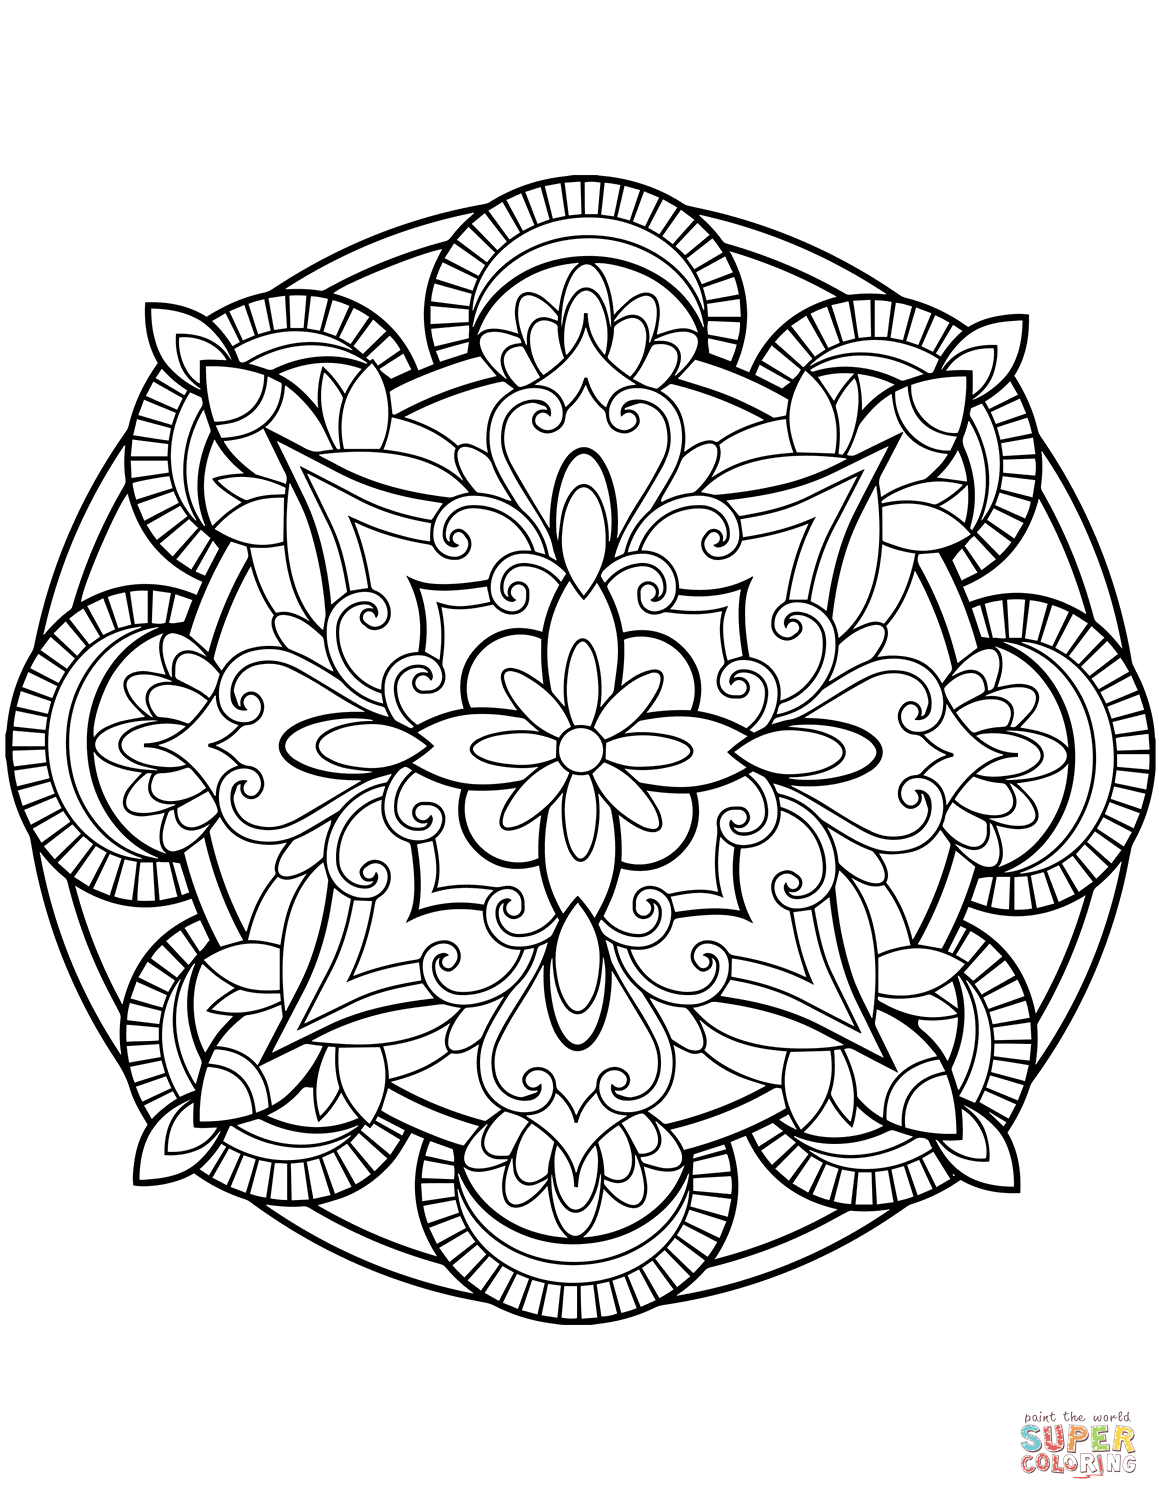 Floral Mandalas Coloring Pages | Free Coloring Pages - Mandala Coloring Free Printable